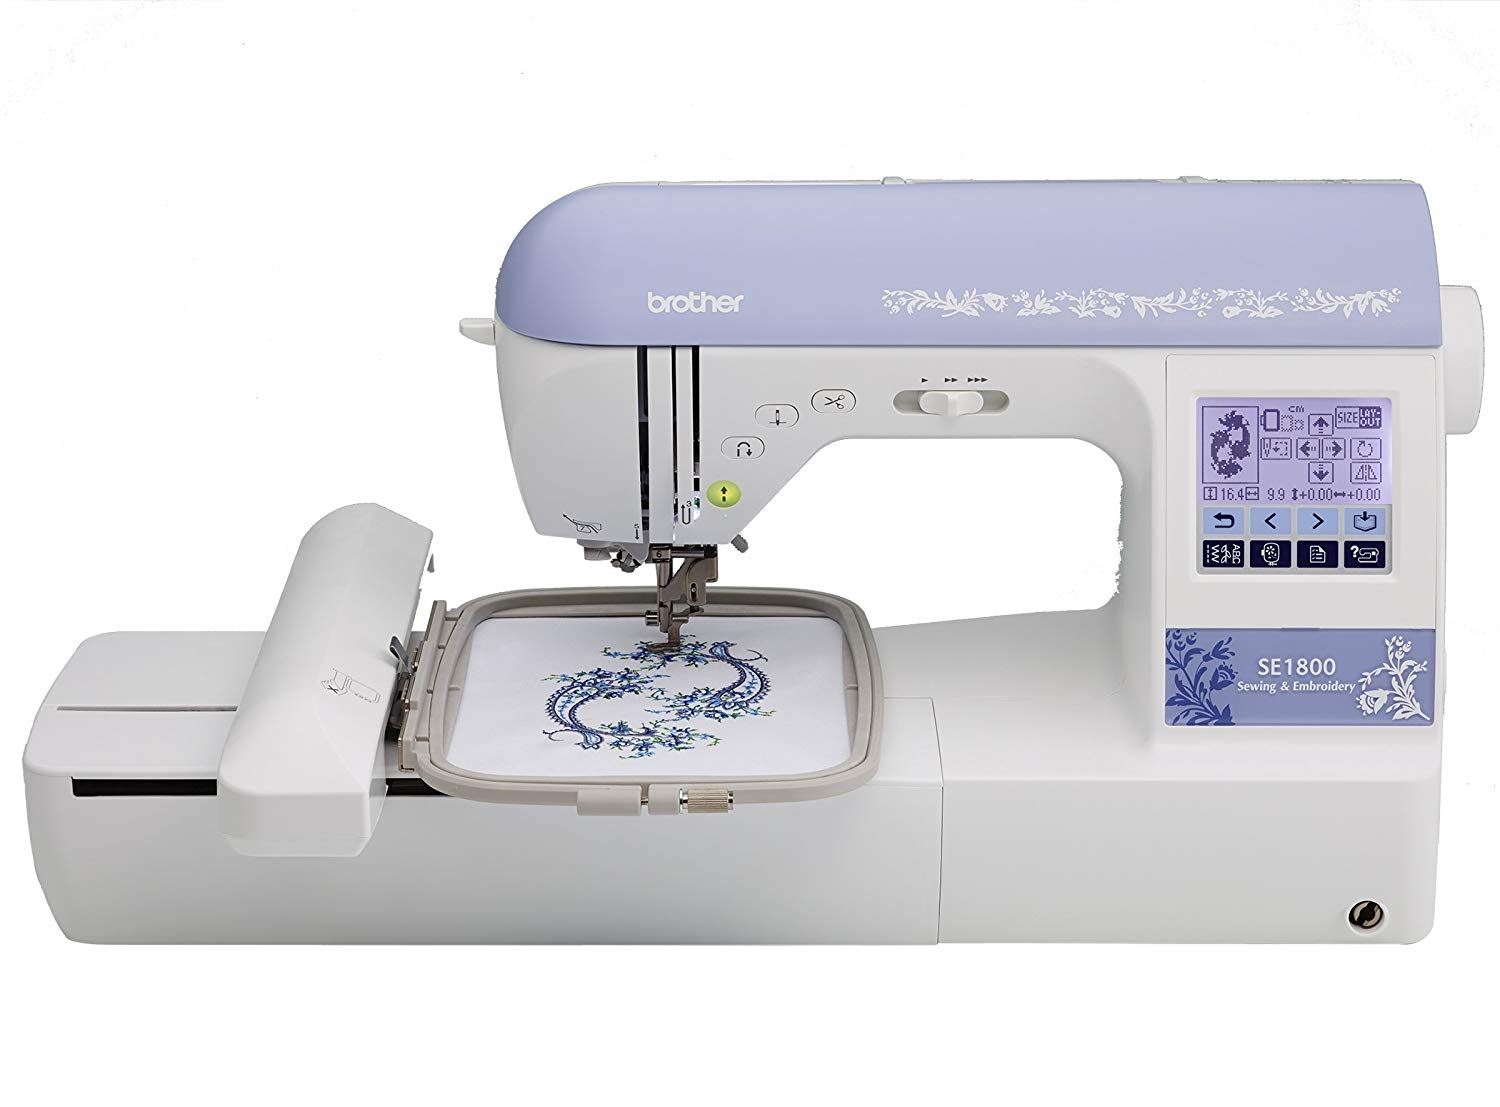 Brother-SE1800-Sewing-and-Embroidery-Machine